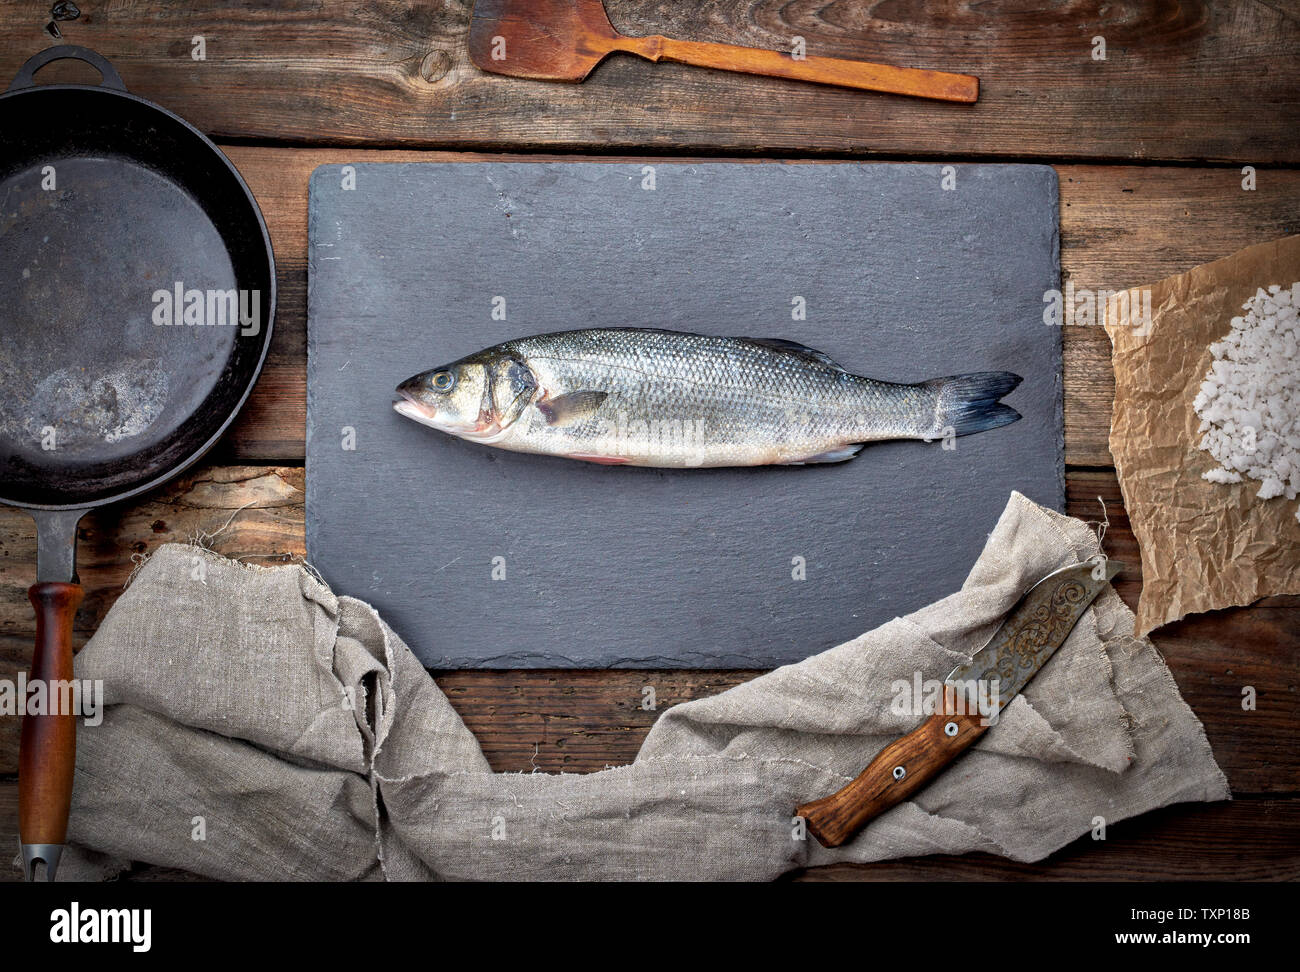 fresh whole sea bass fish on a black board, next to it is an empty round black frying pan on a wooden table, top view - Stock Image